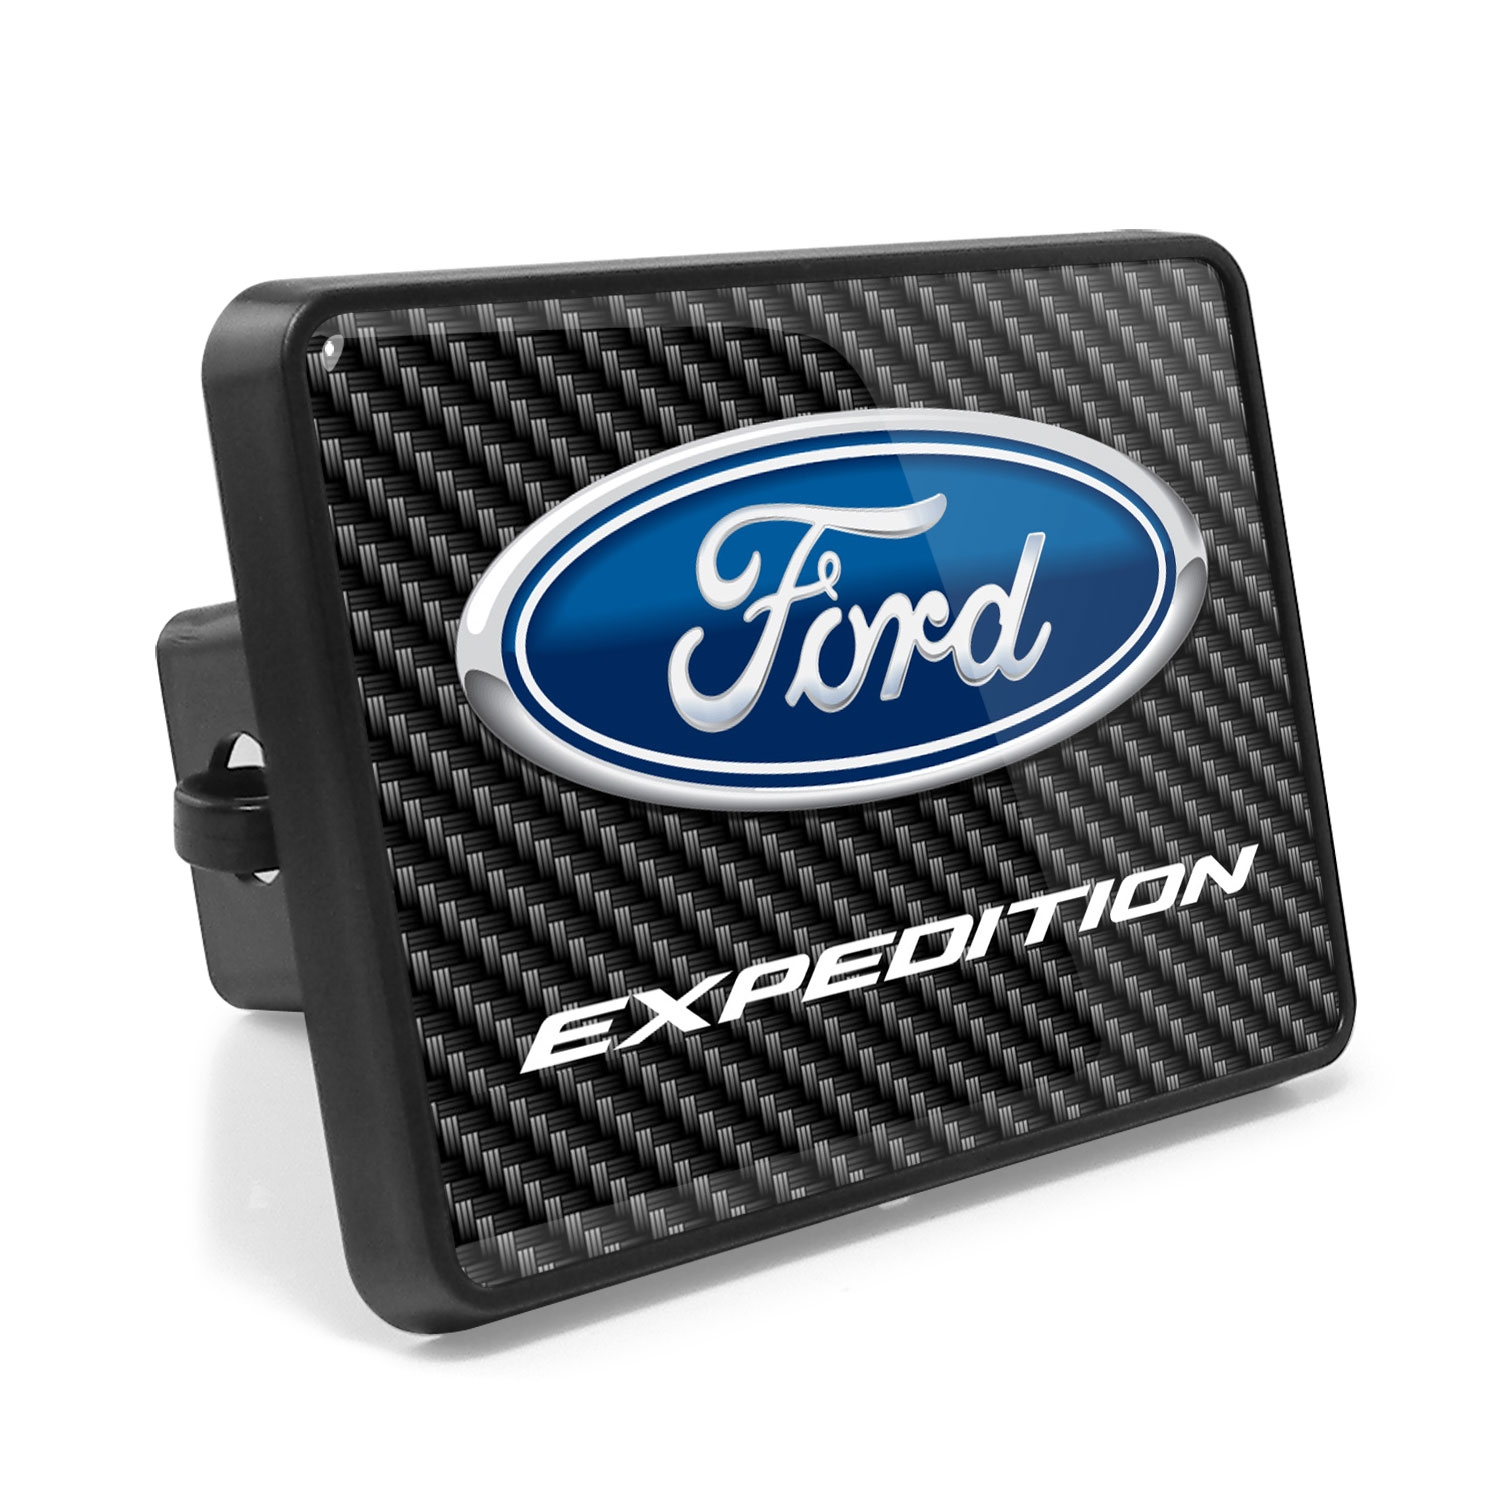 Ford Expedition Carbon Fiber Look UV Graphic Metal Plate on ABS Plastic 2 inch Tow Hitch Cover